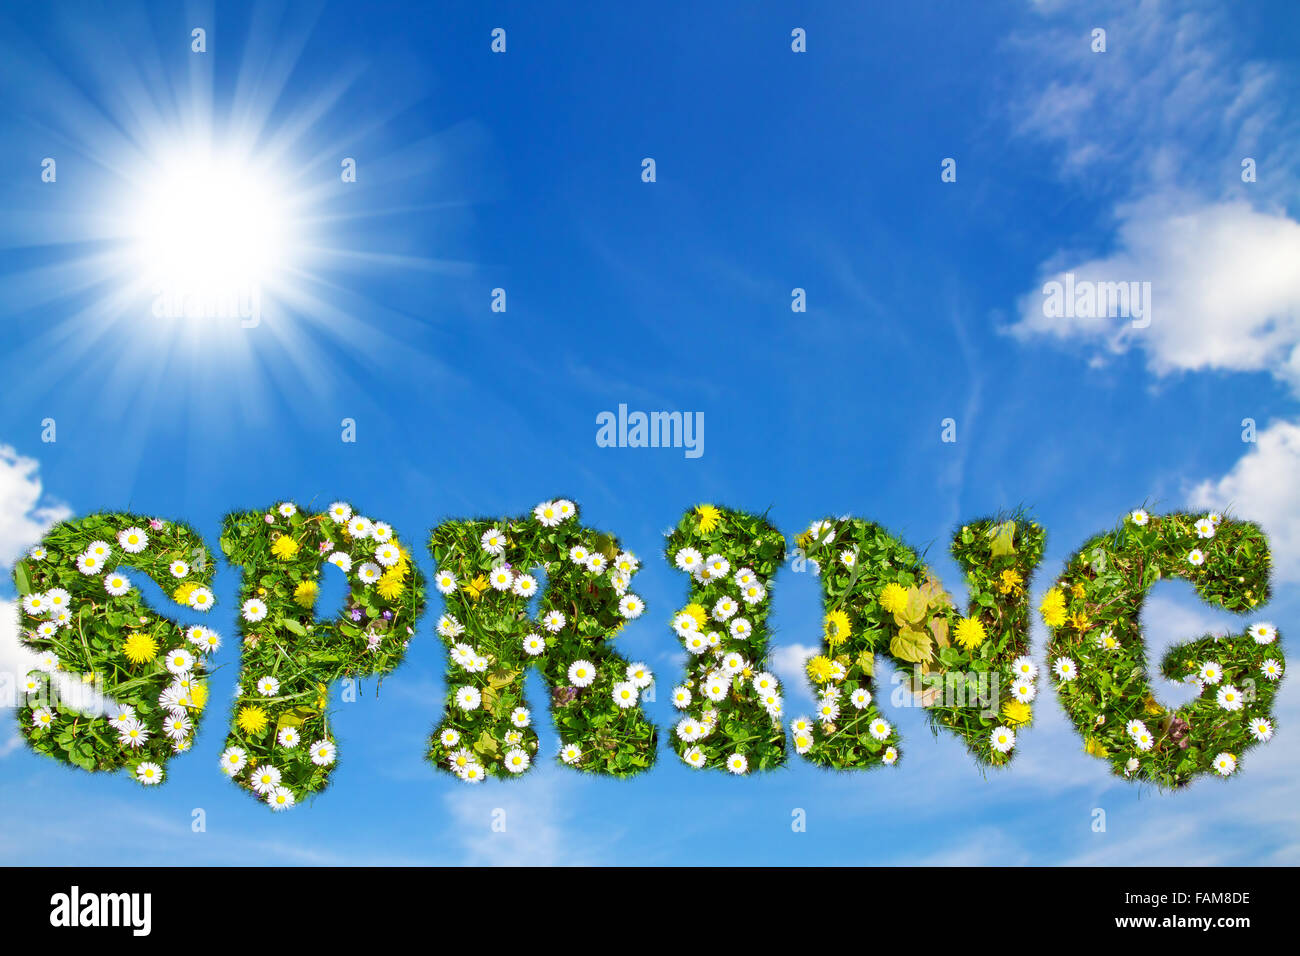 Word spring with flower texture - Stock Image